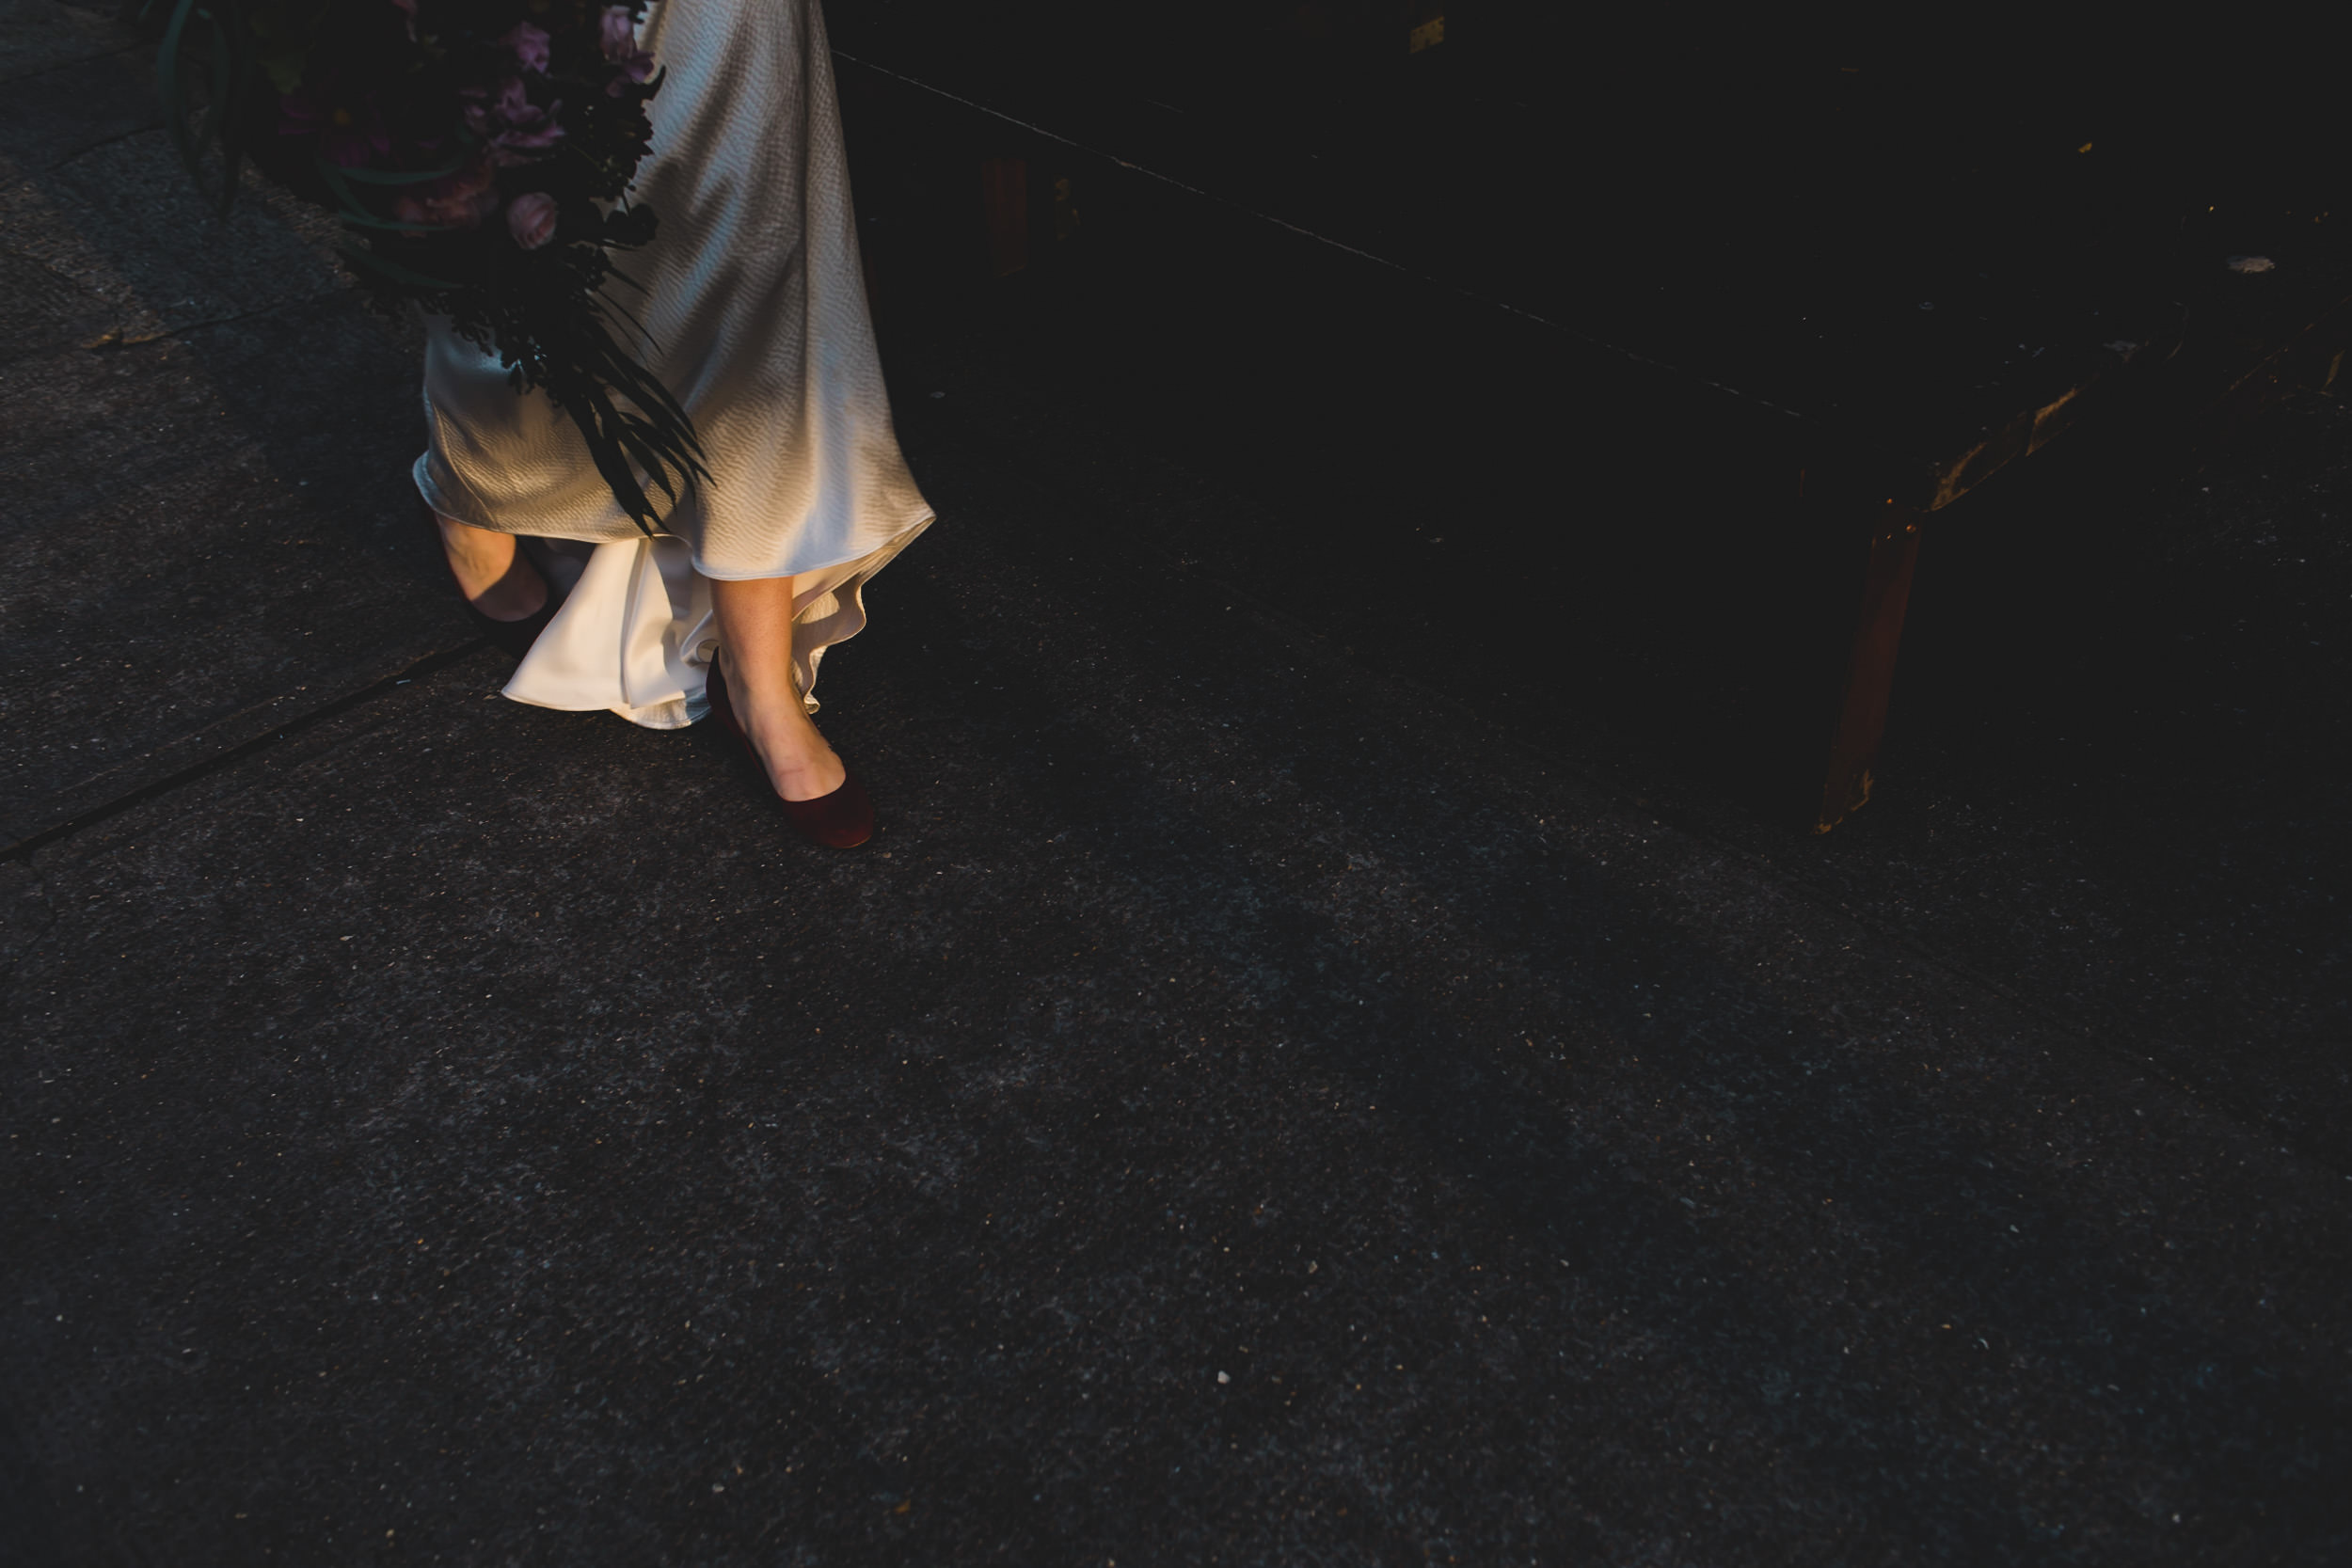 sunset on bride's shoes